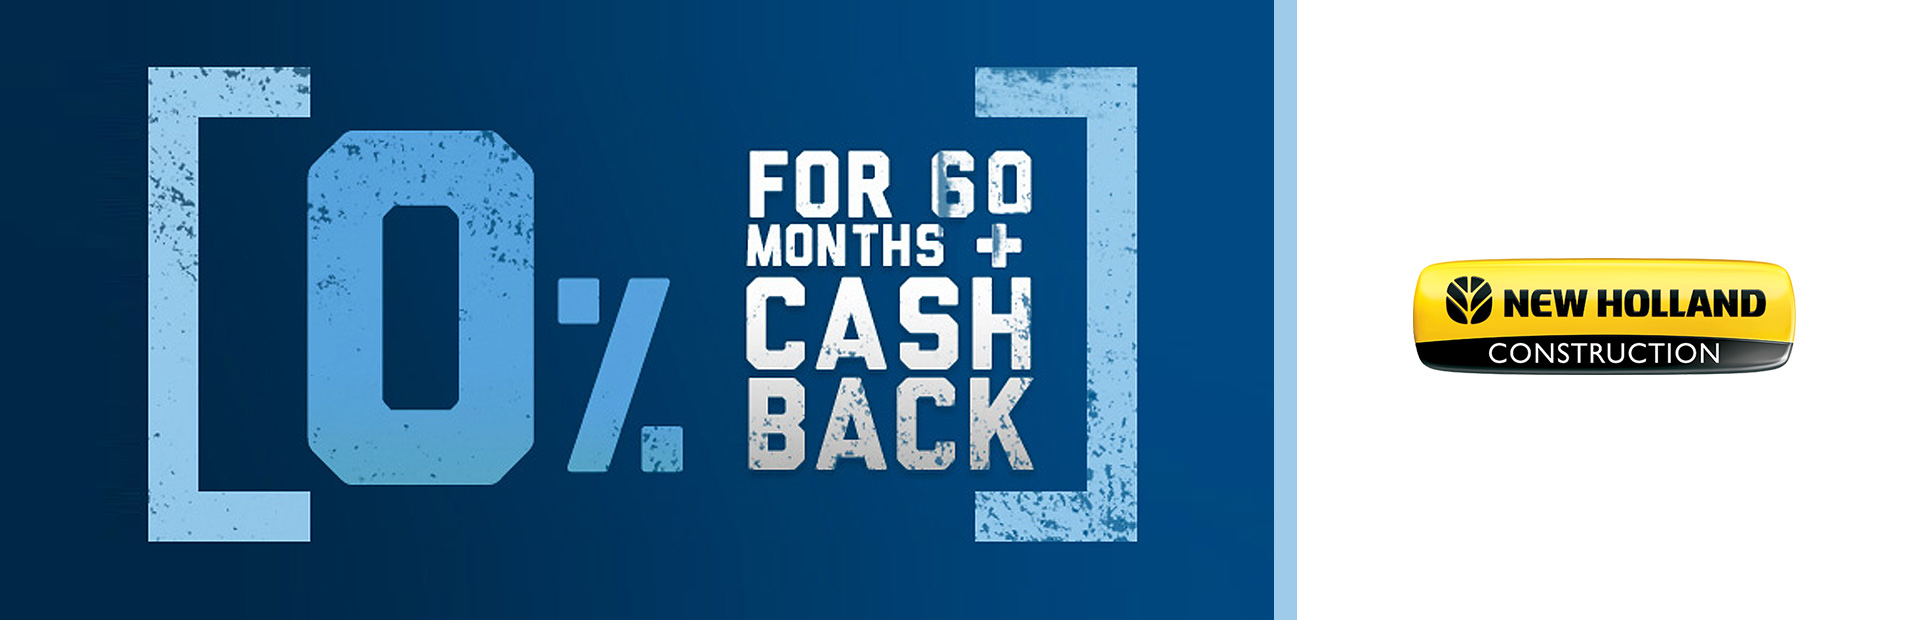 New Holland Construction: 0% for 60 PLUS Cash Back